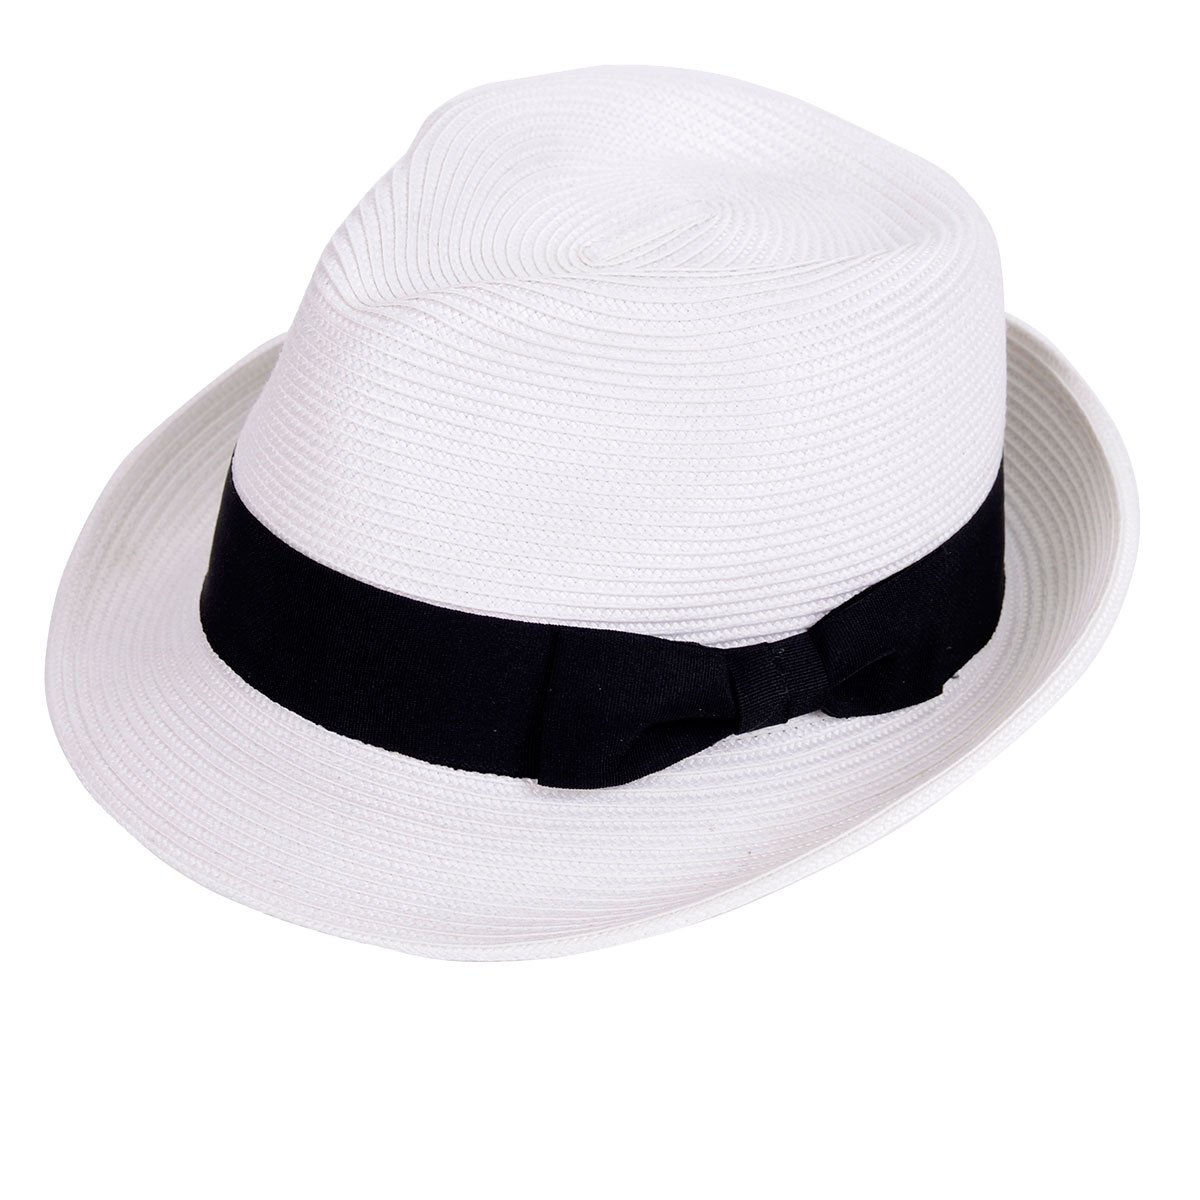 Straw Fedora Hat Sun Trilby Unisex Summer Beach Hats Fashion Panama with Short Brim for Men and WomenB-White)